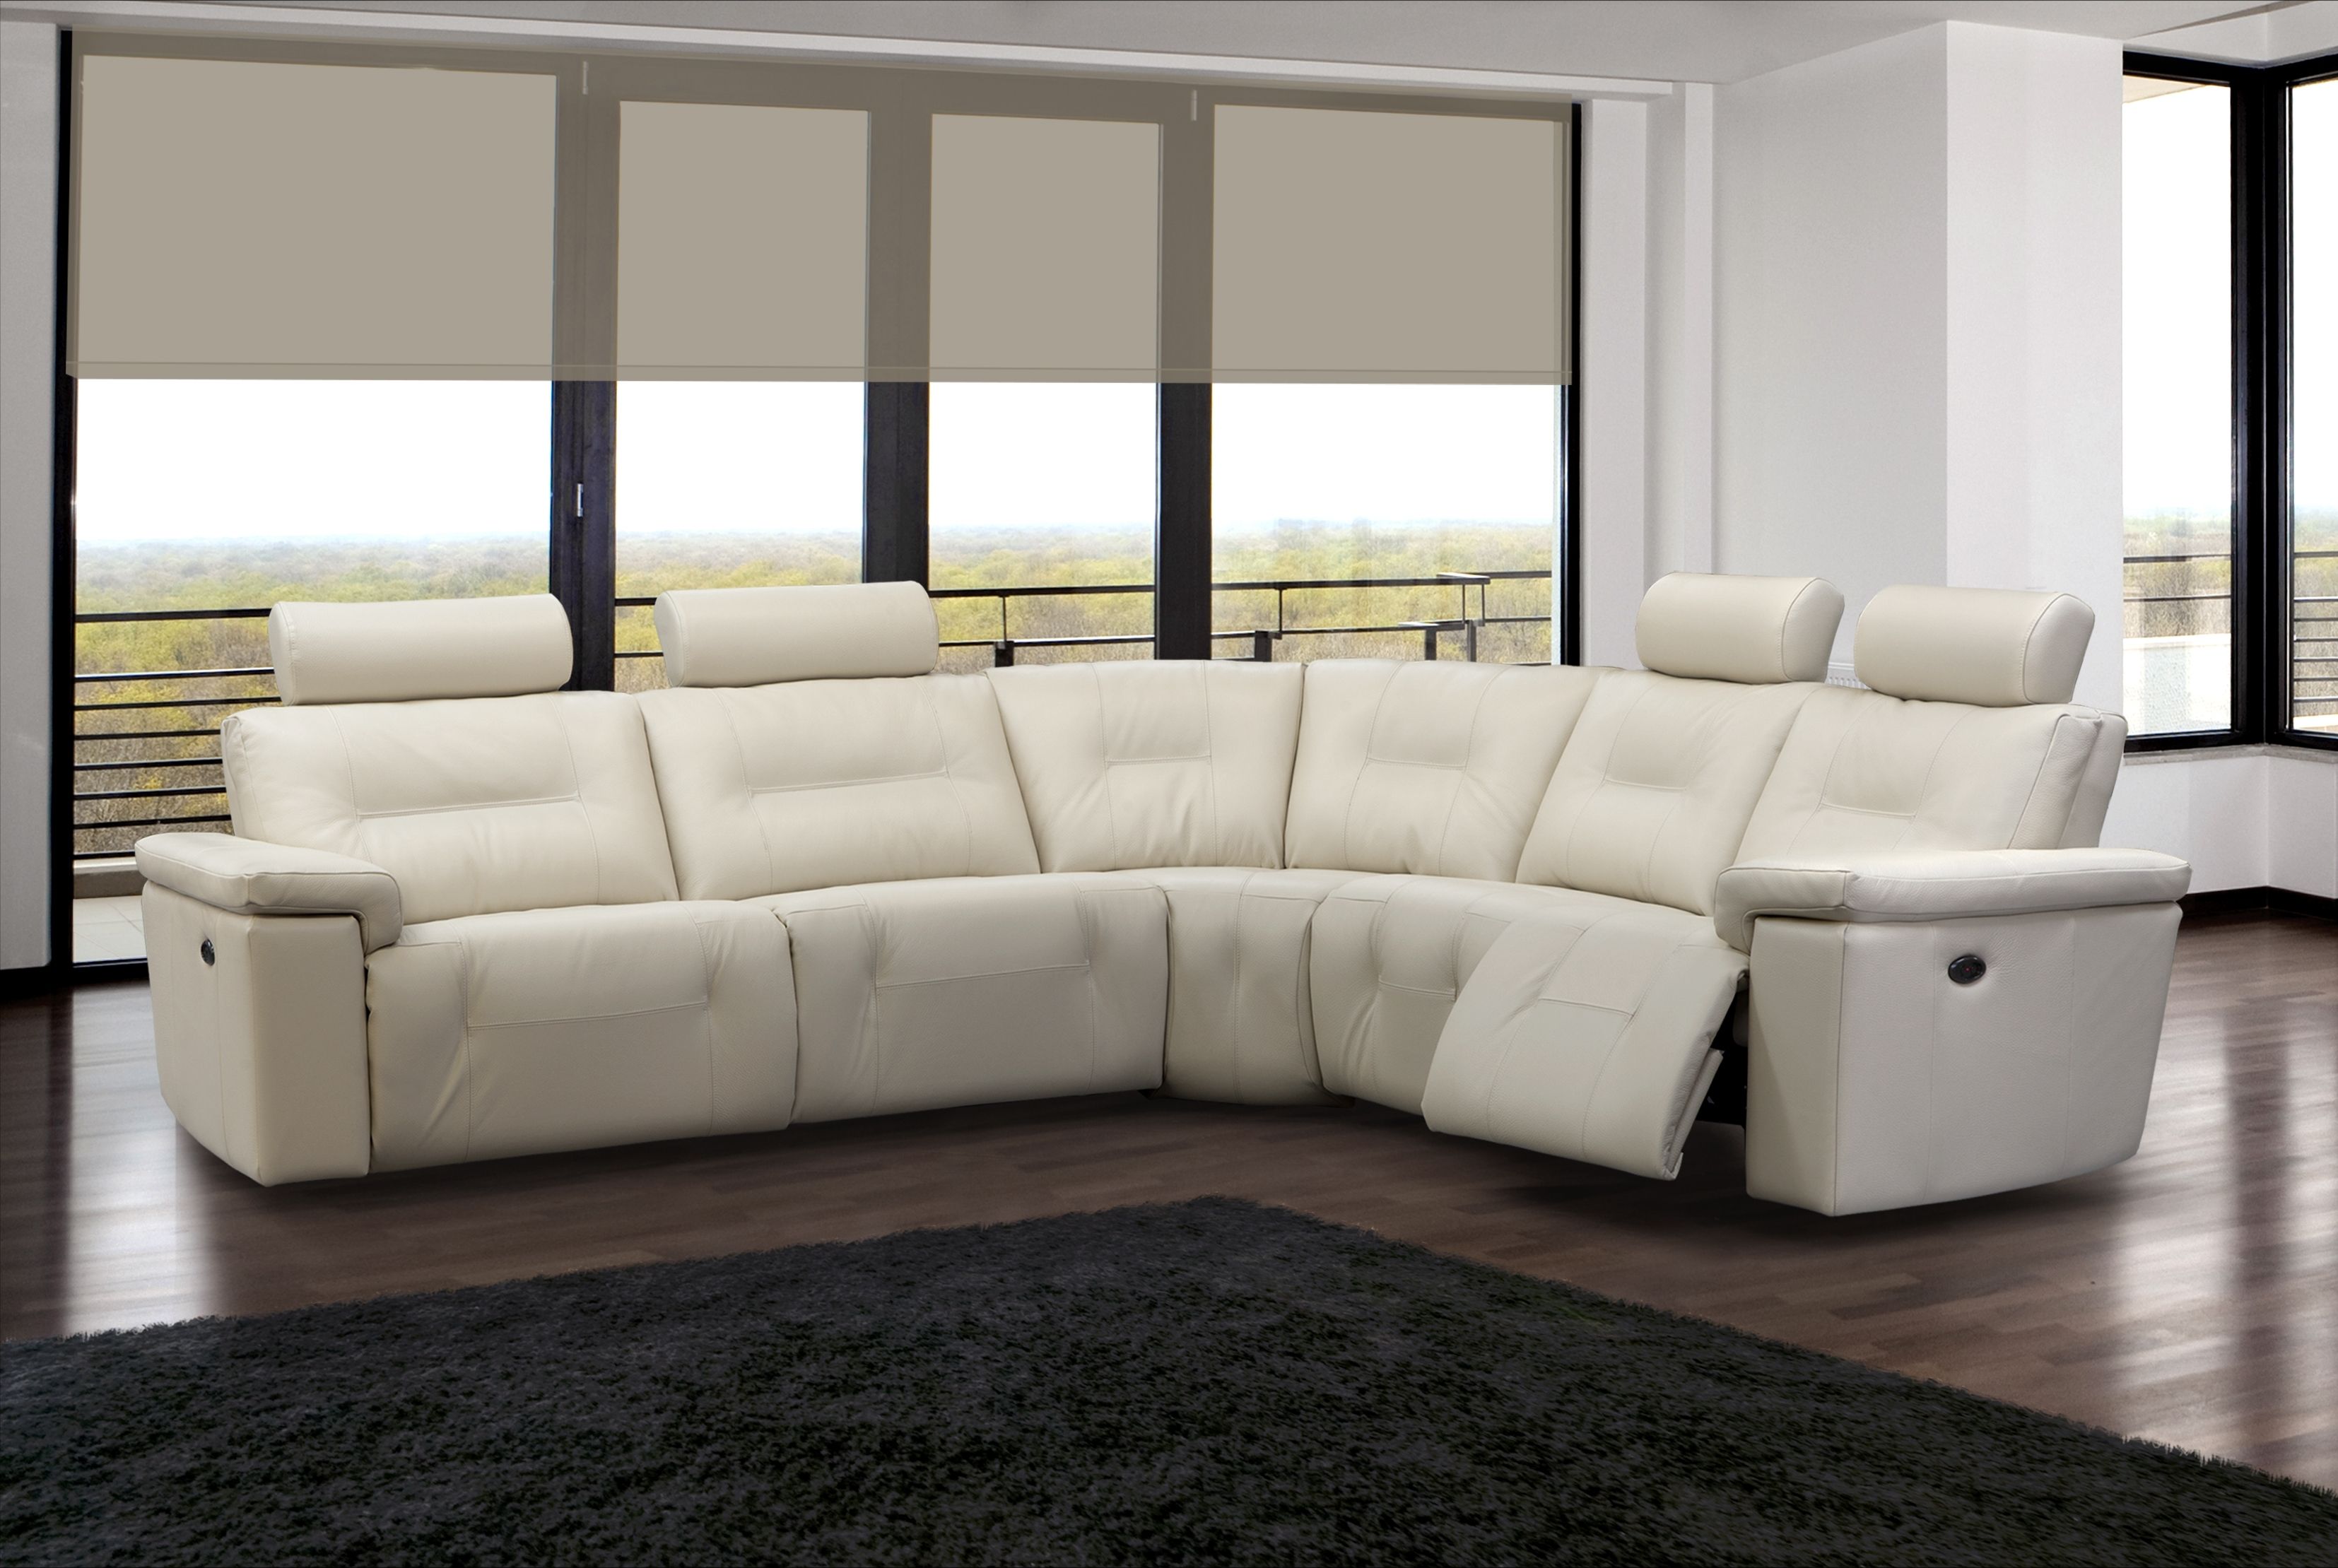 Elran Sofas Sectionals | Thecreativescientist Throughout Economax Sectional Sofas (View 2 of 10)